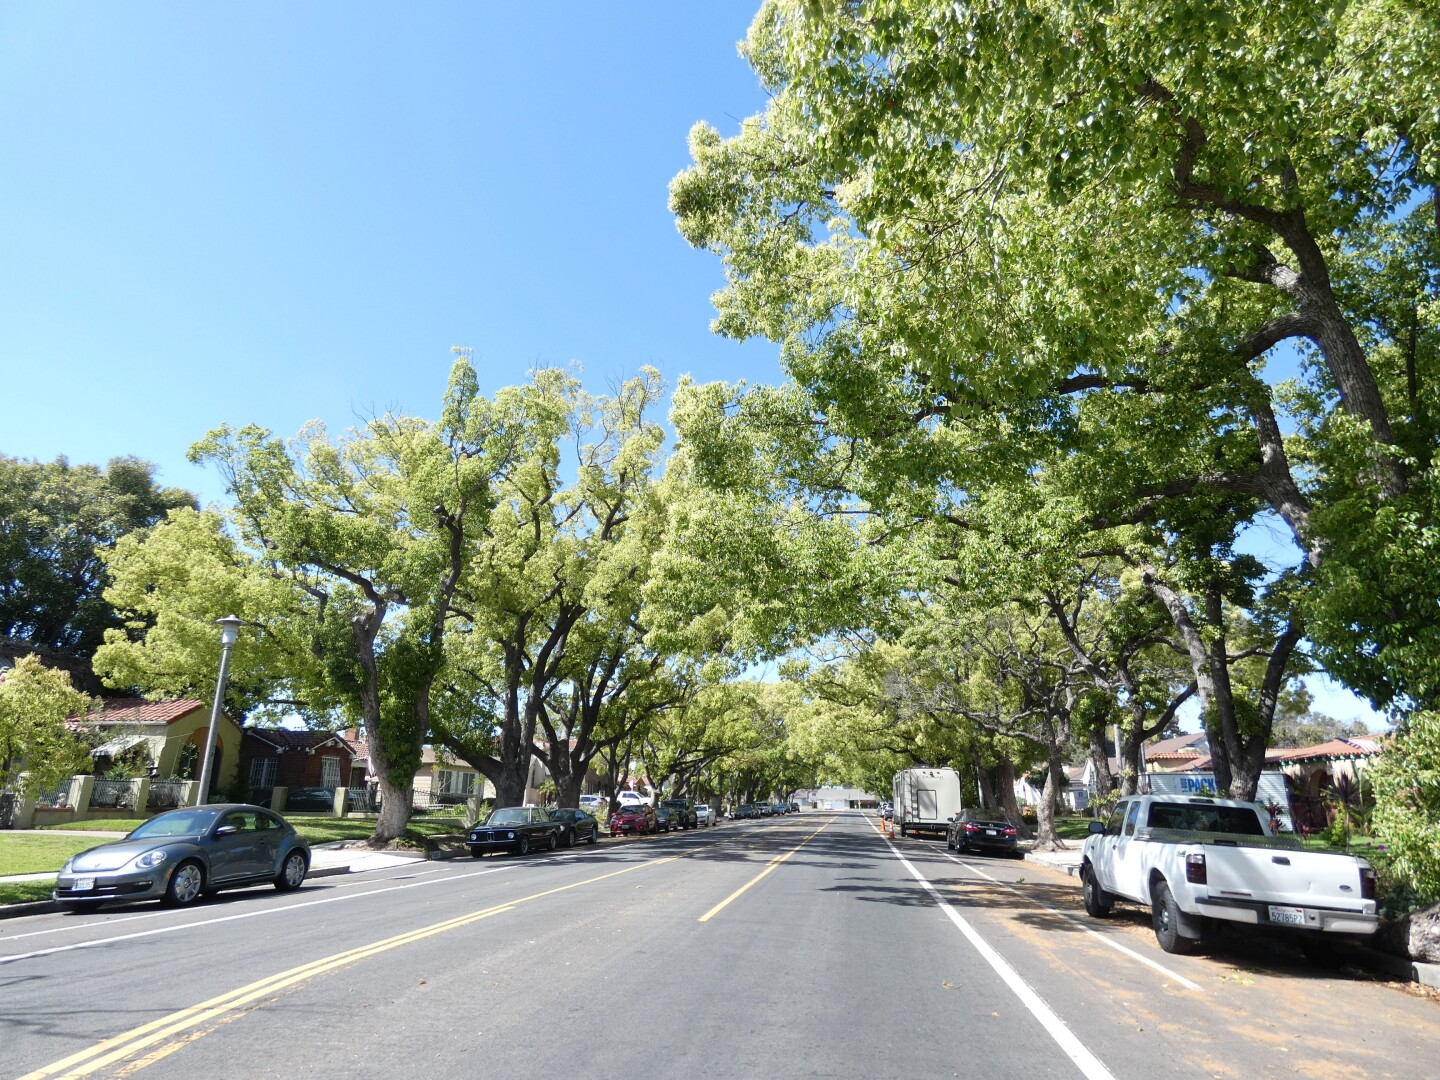 Camphor trees line the streets of Wilmington on Lakme Avenue.